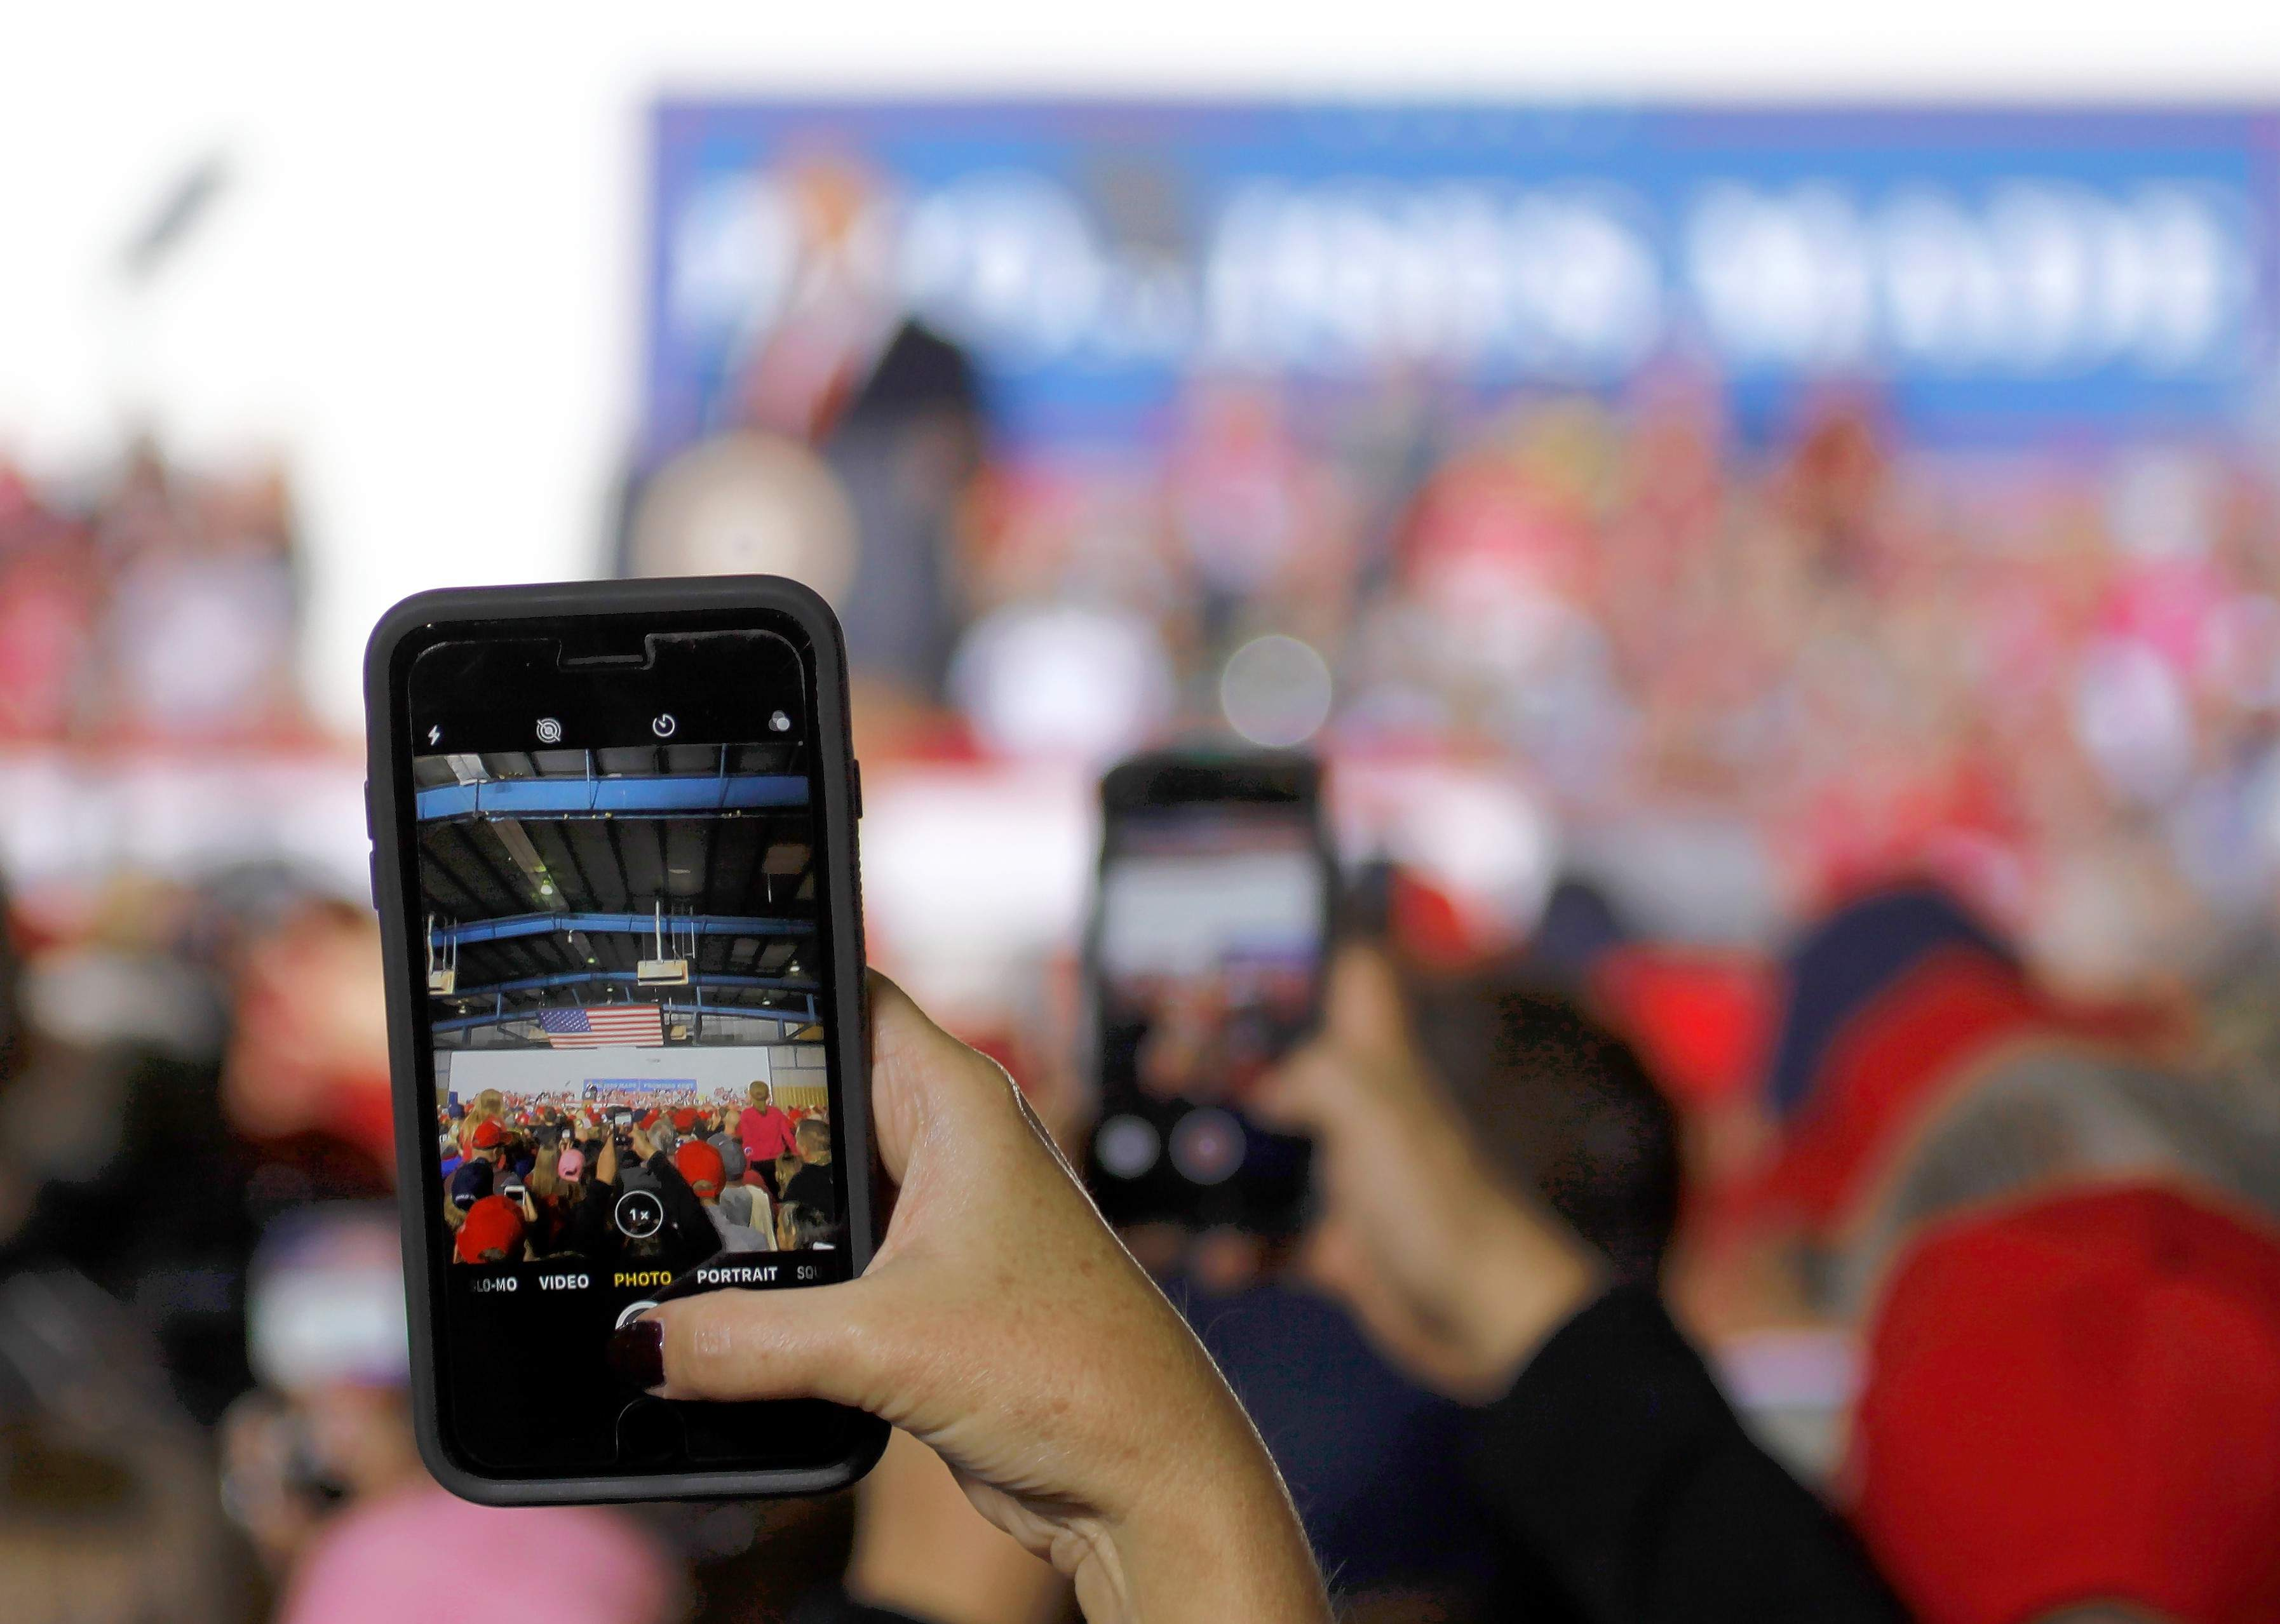 A cell phone user captures the scene during President Trump's rally Saturday at the Southern Illinois Airport.